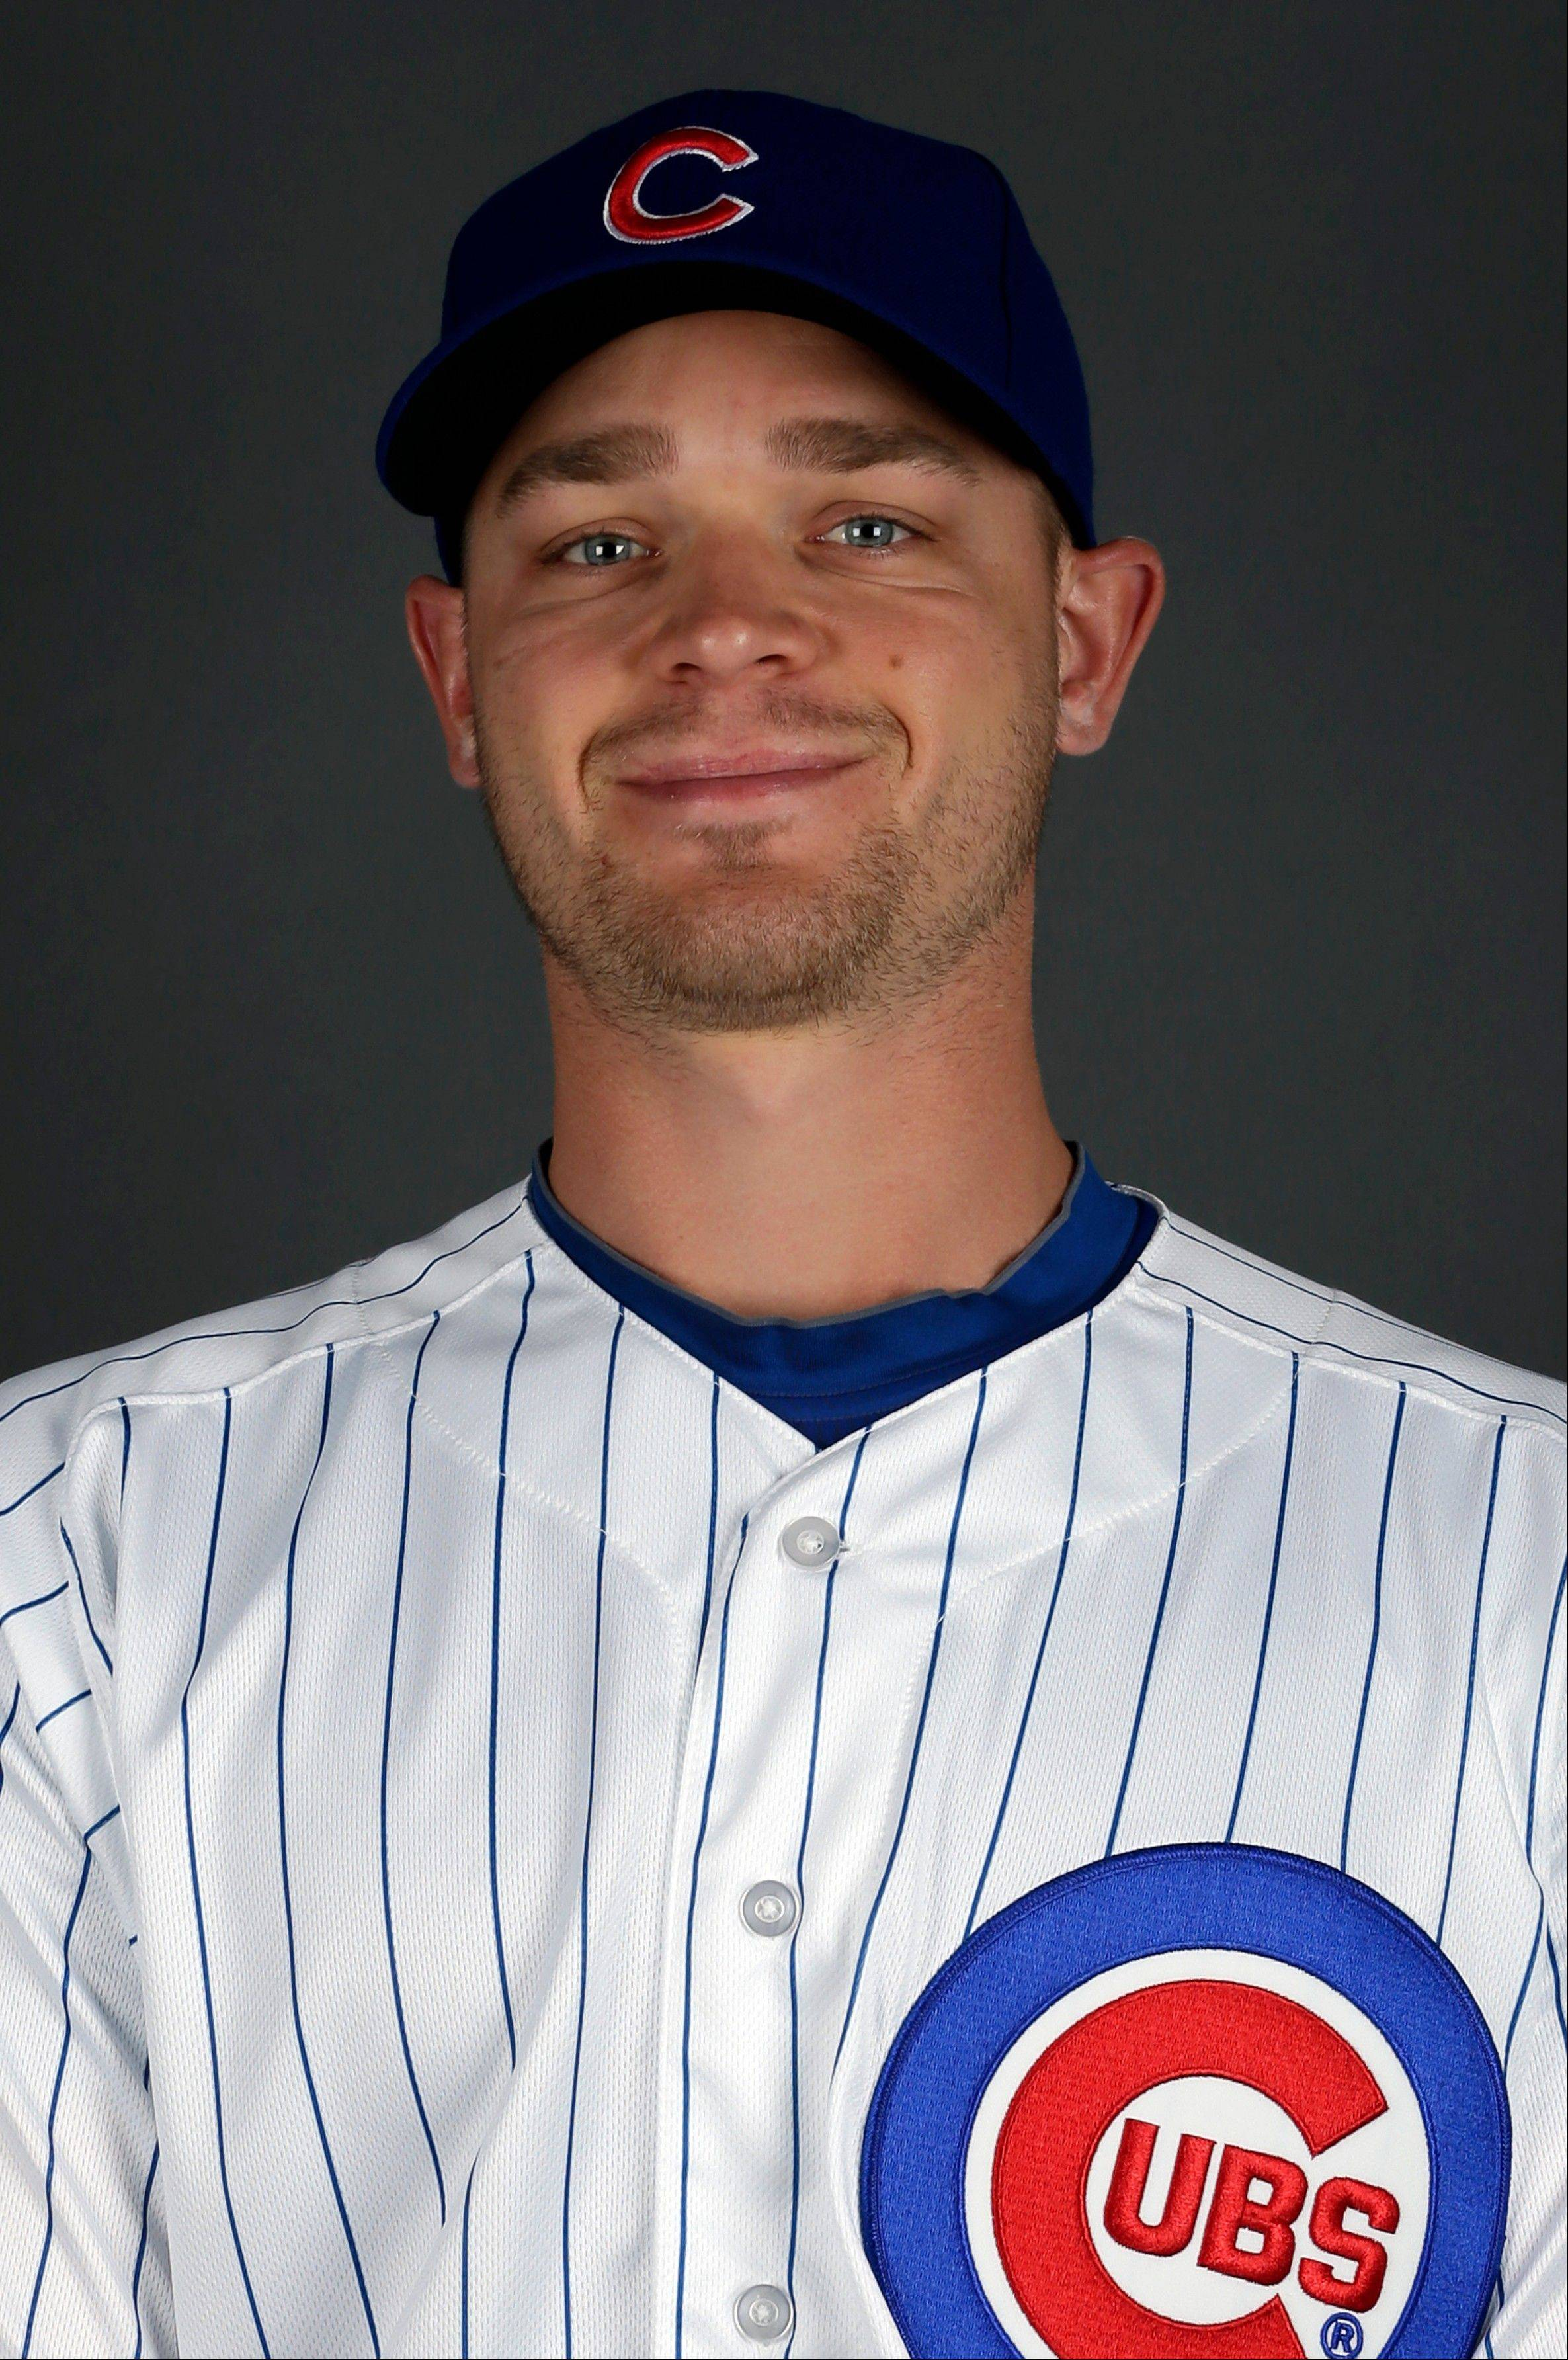 Bowden feels right at home with Cubs